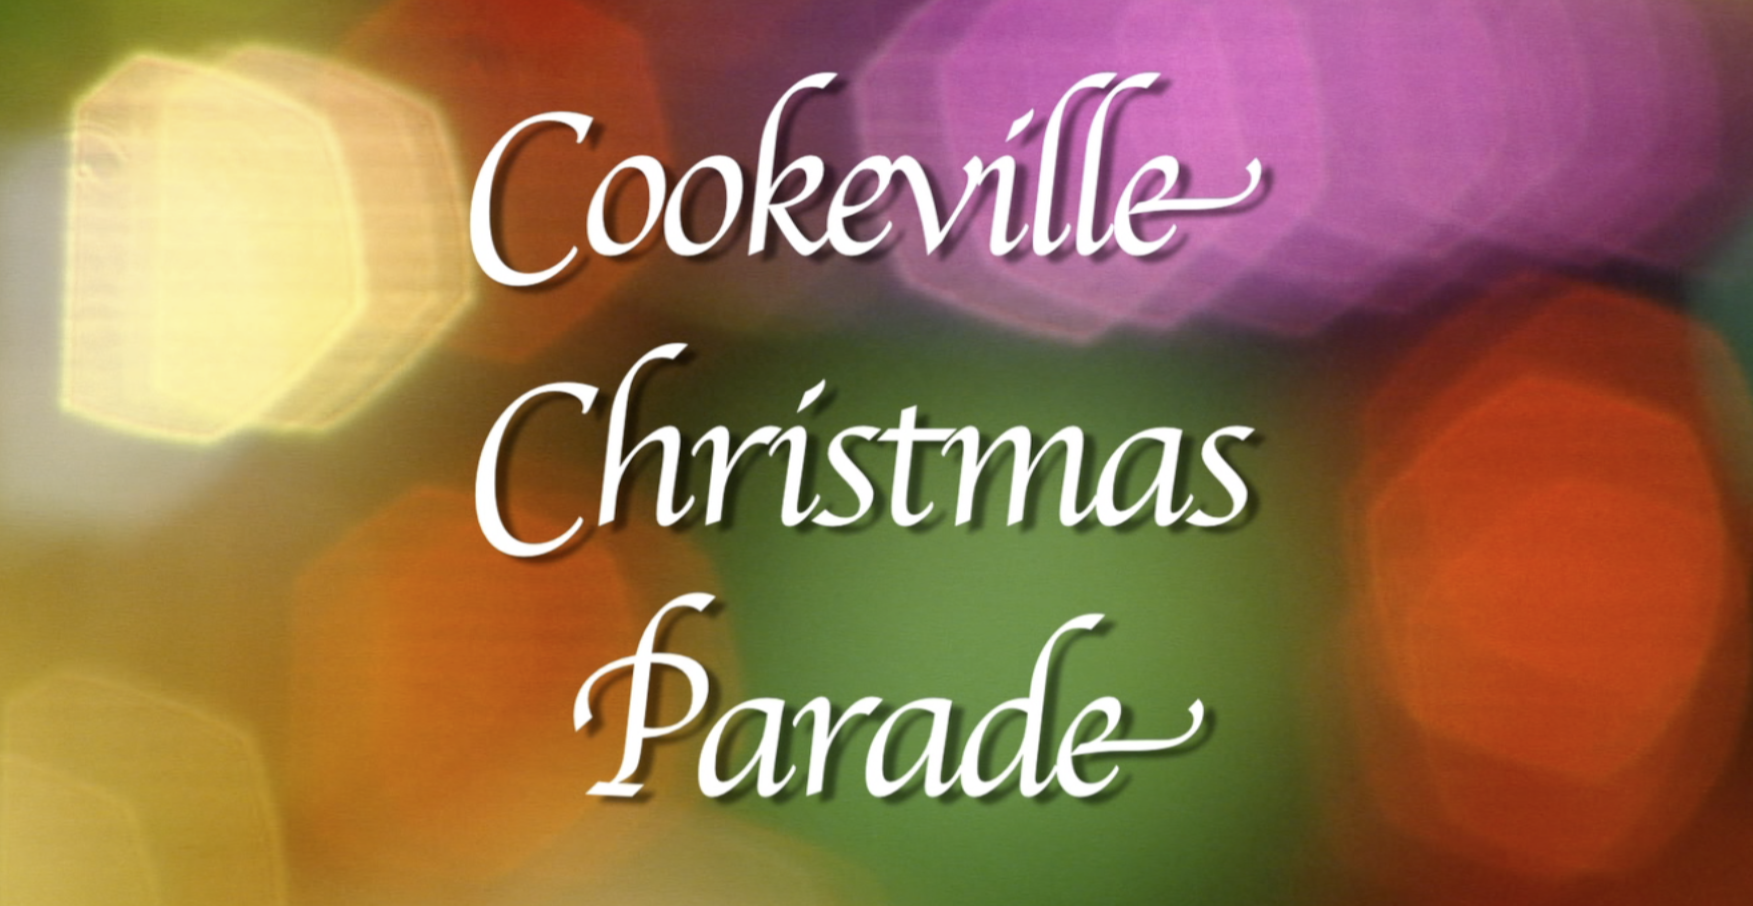 Cookeville Christmas Parade